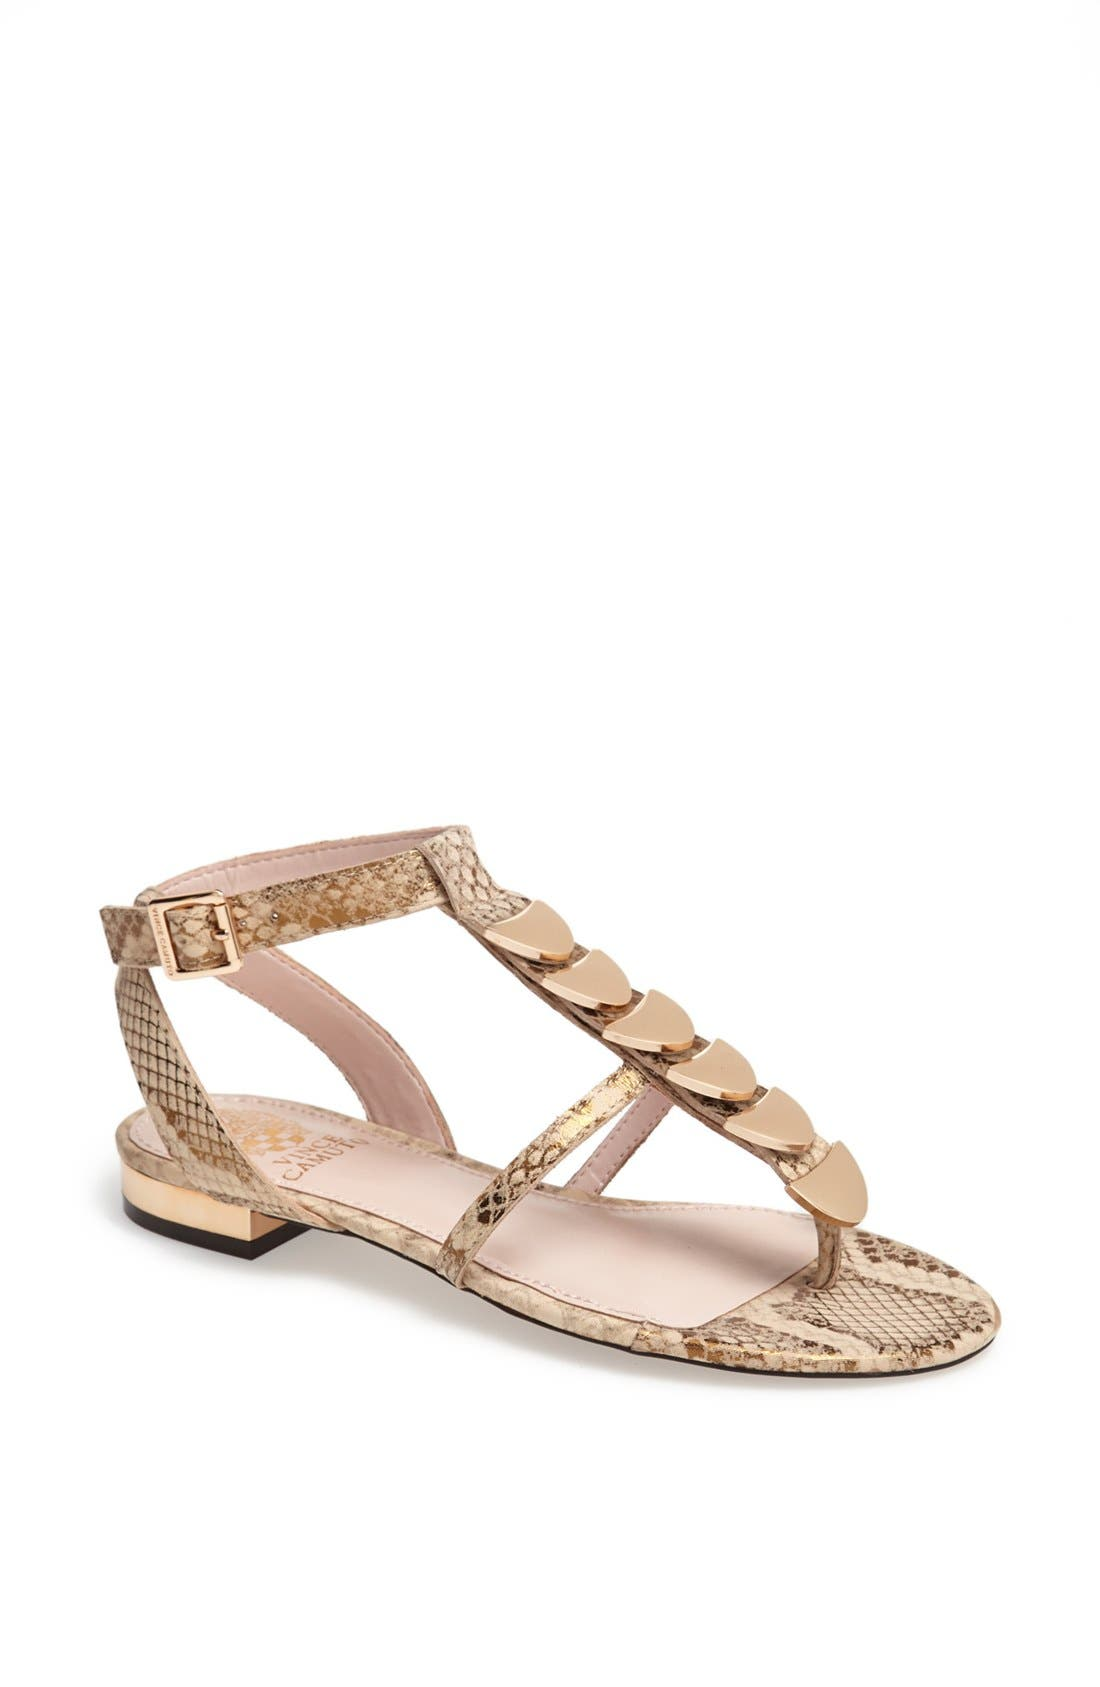 Alternate Image 1 Selected - Vince Camuto 'Himila' Sandal